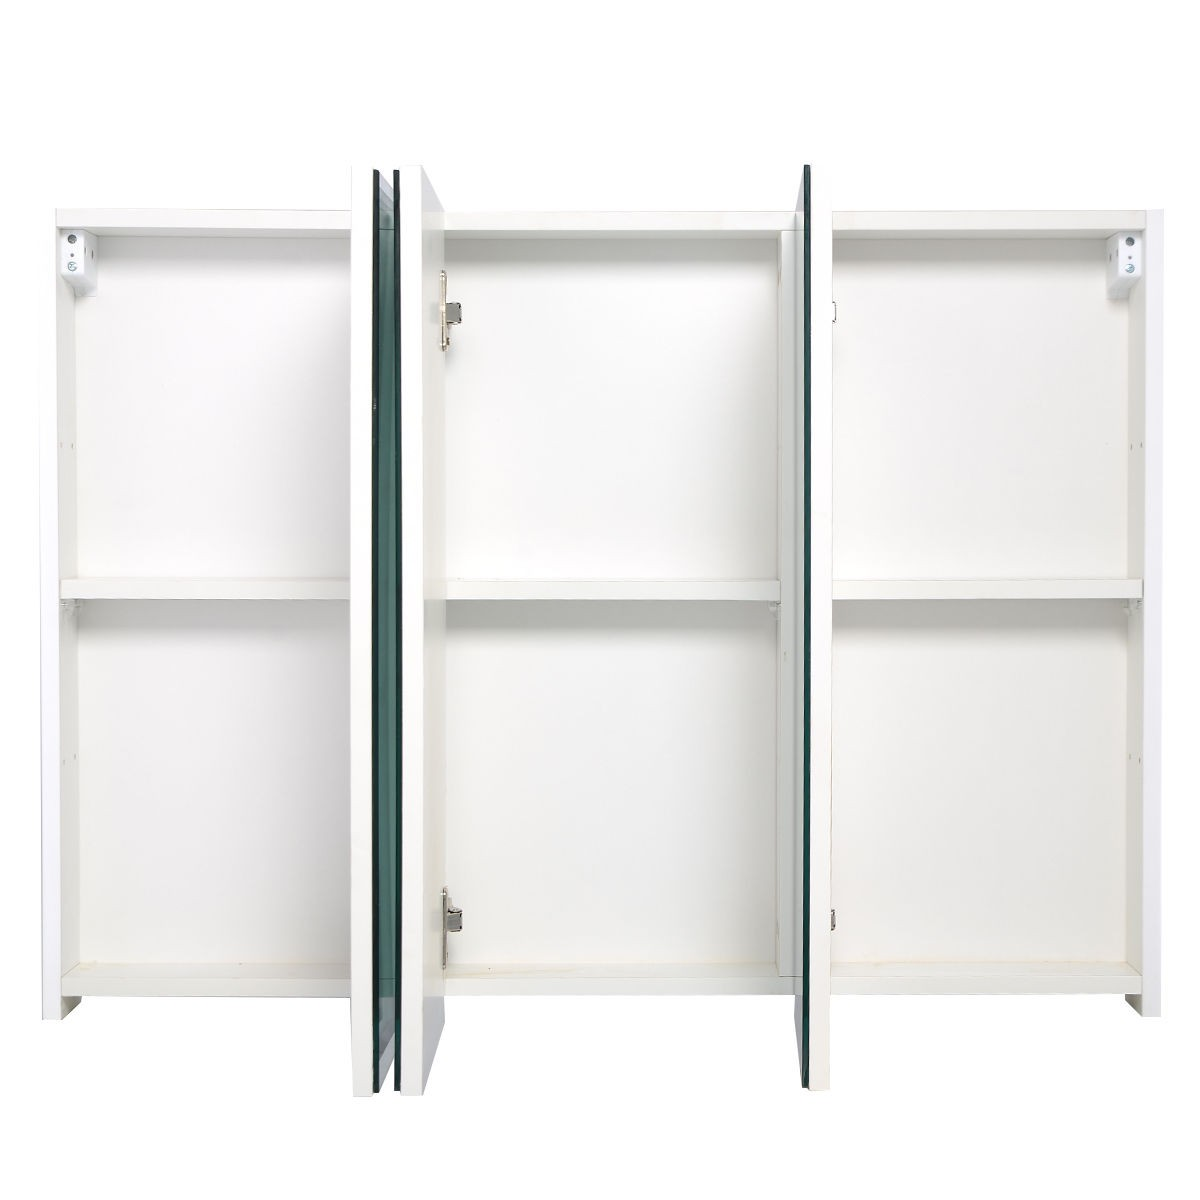 "3 Mirror Door 36"" 20"" Wide Wall Mount Mirrored Bathroom Medicine Cabinet Storage"